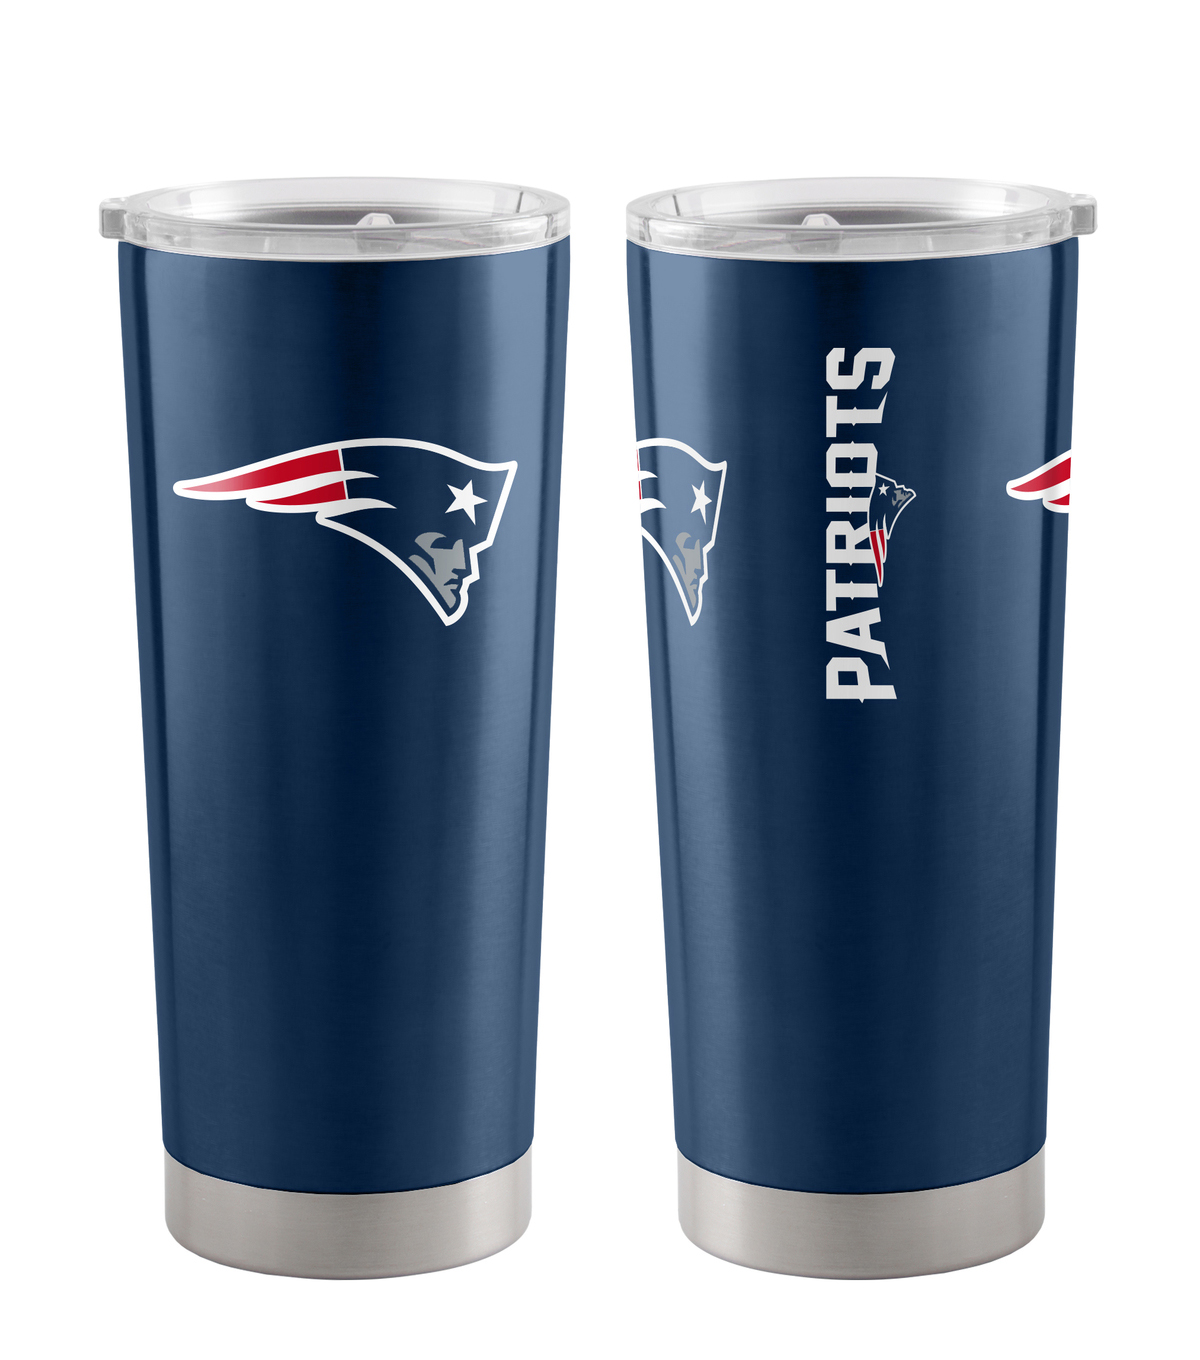 New England Patriots 20 oz Insulated Stainless Steel Tumbler